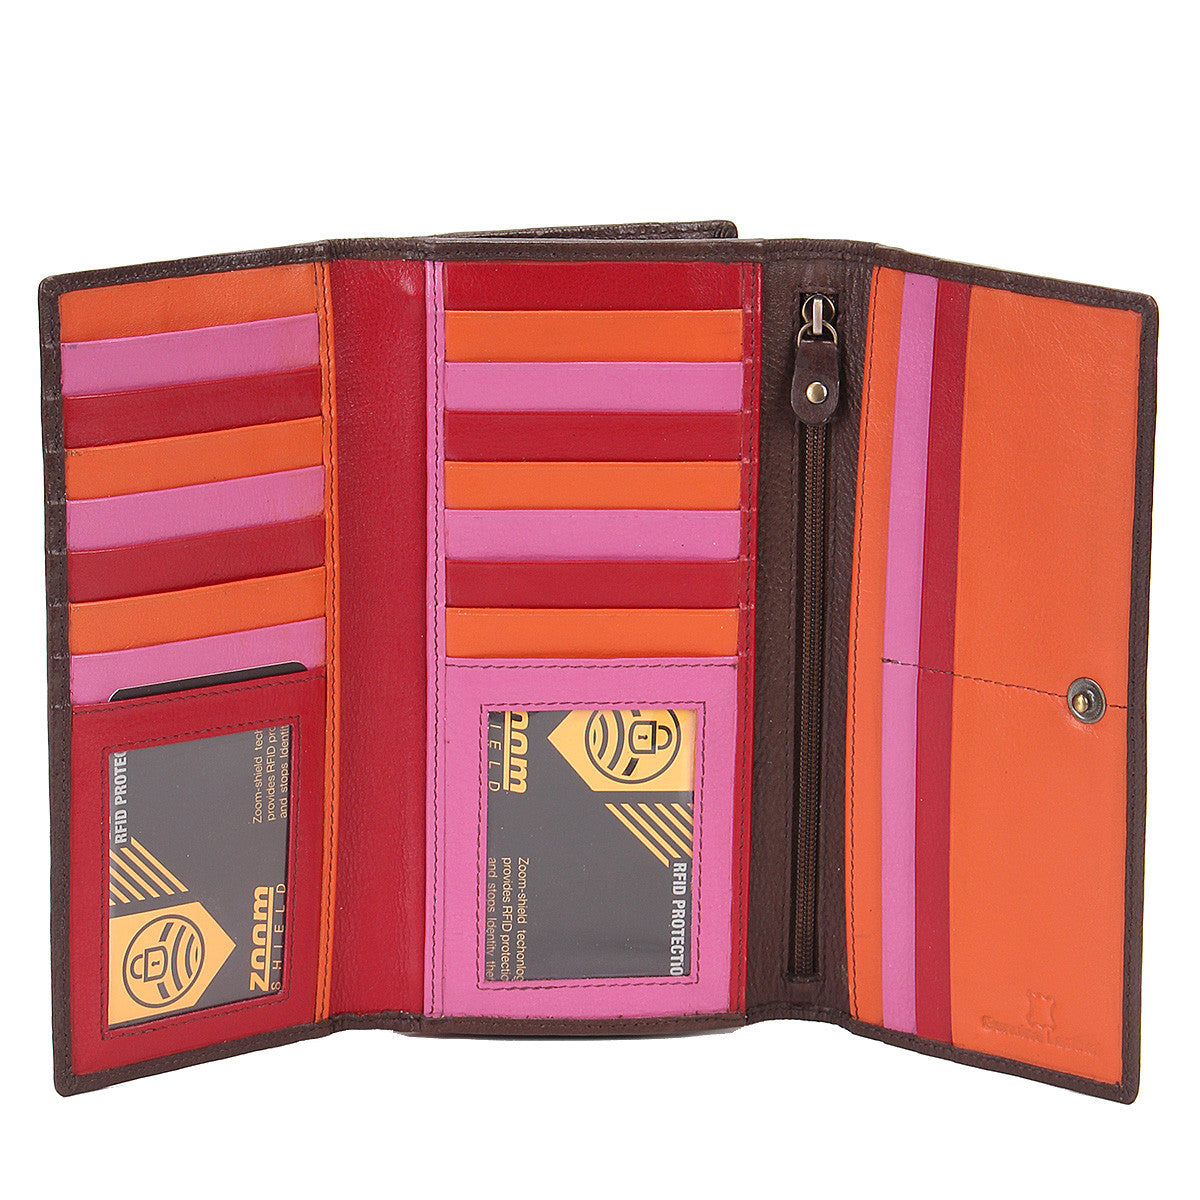 Zoomlite leather RFID wallet with lots of card spaces and 2 zip compartments